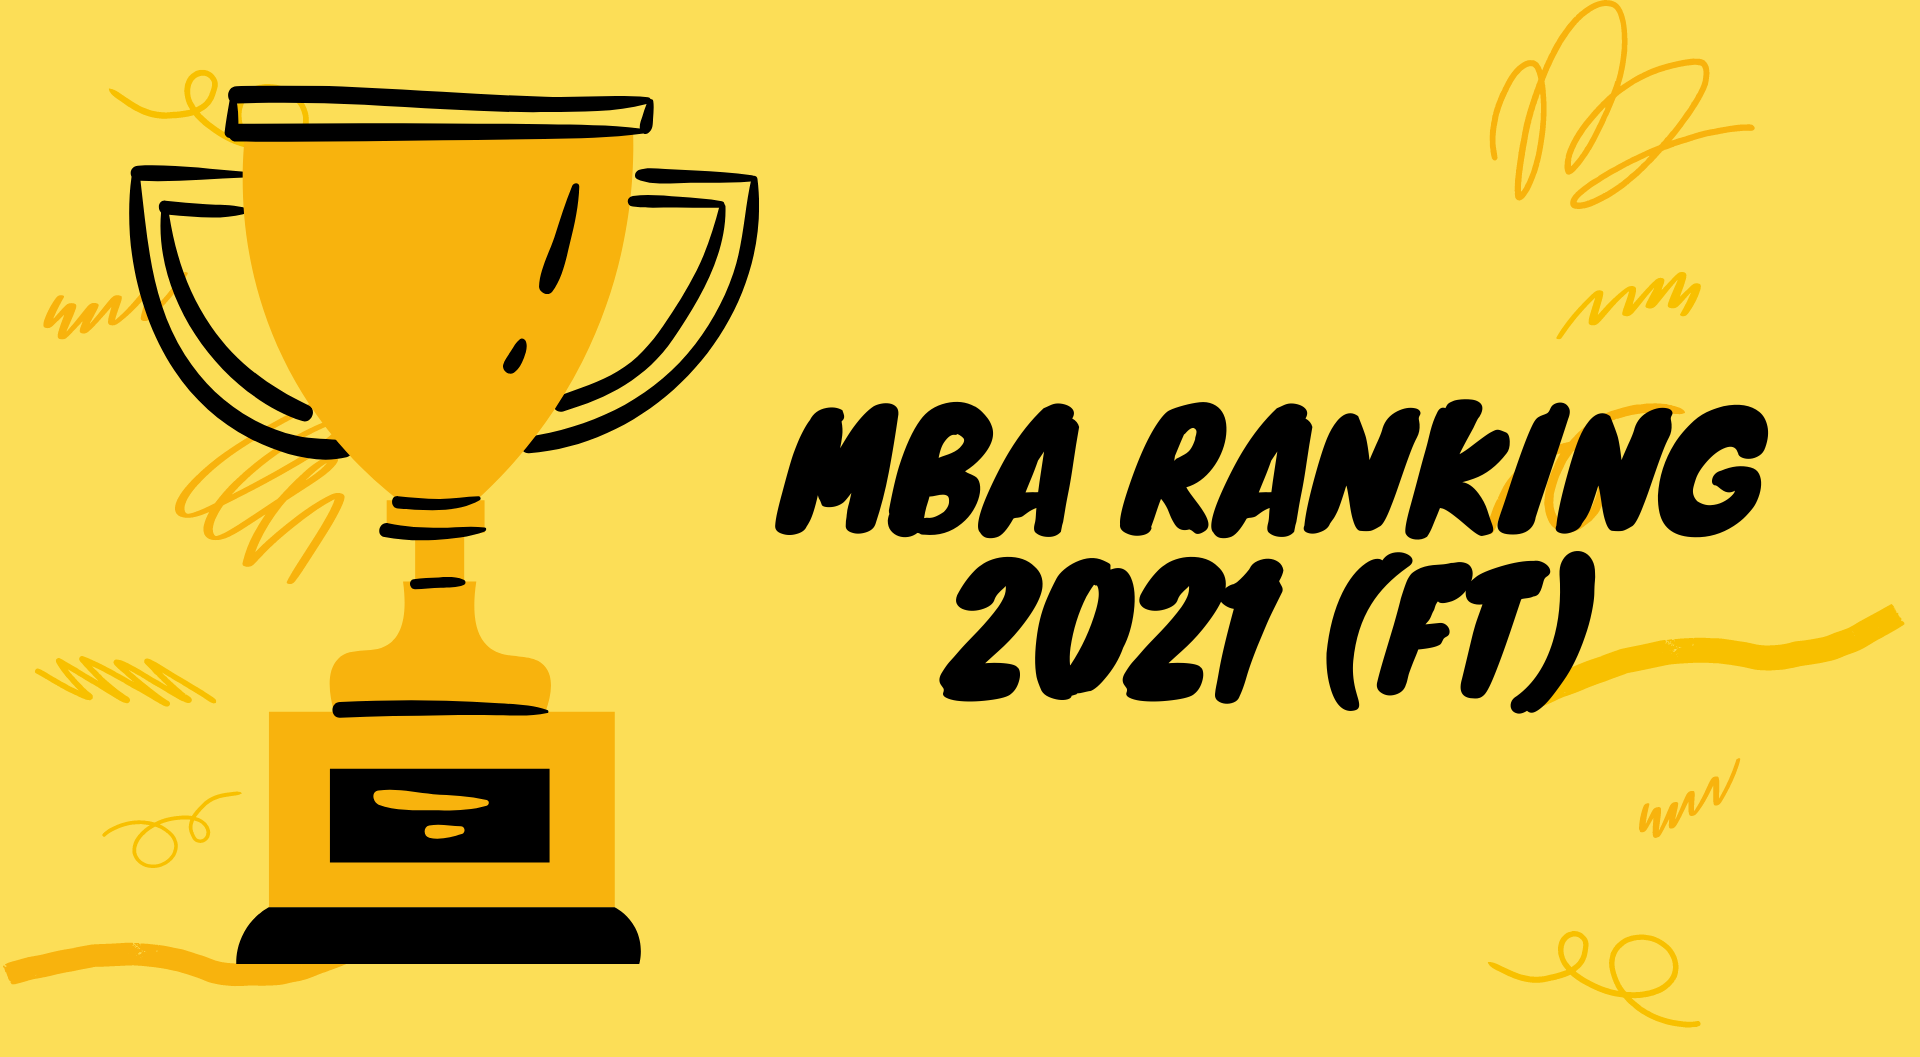 MBA Ranking 2021 FT